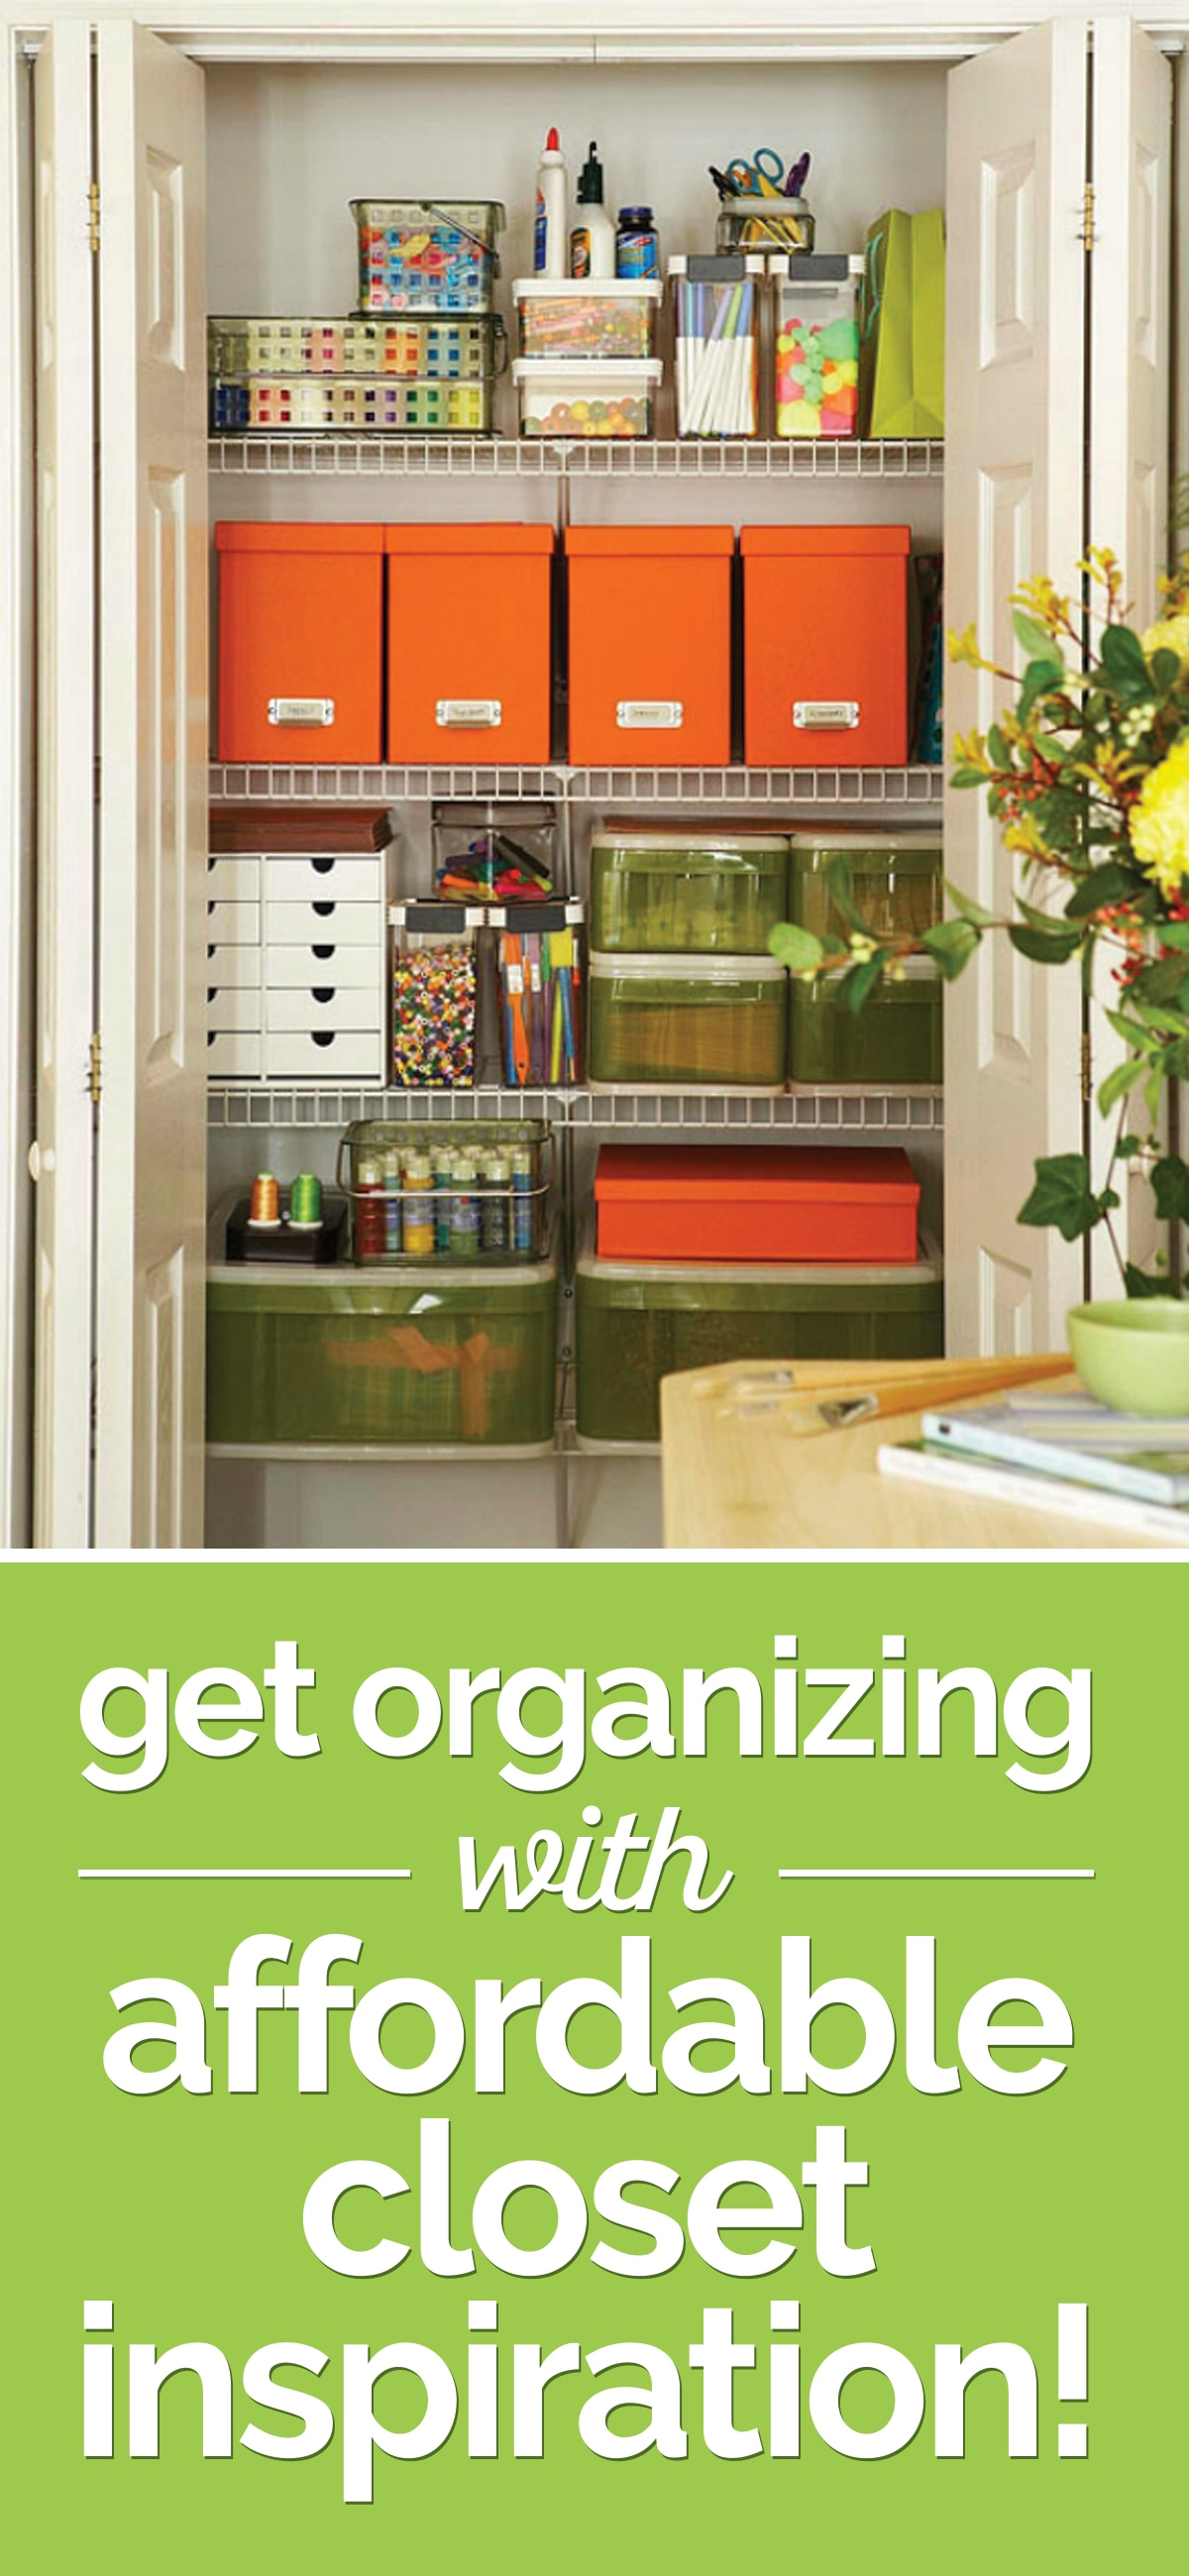 Get Organizing with (Affordable) Closet Inspiration! | thegoodstuff